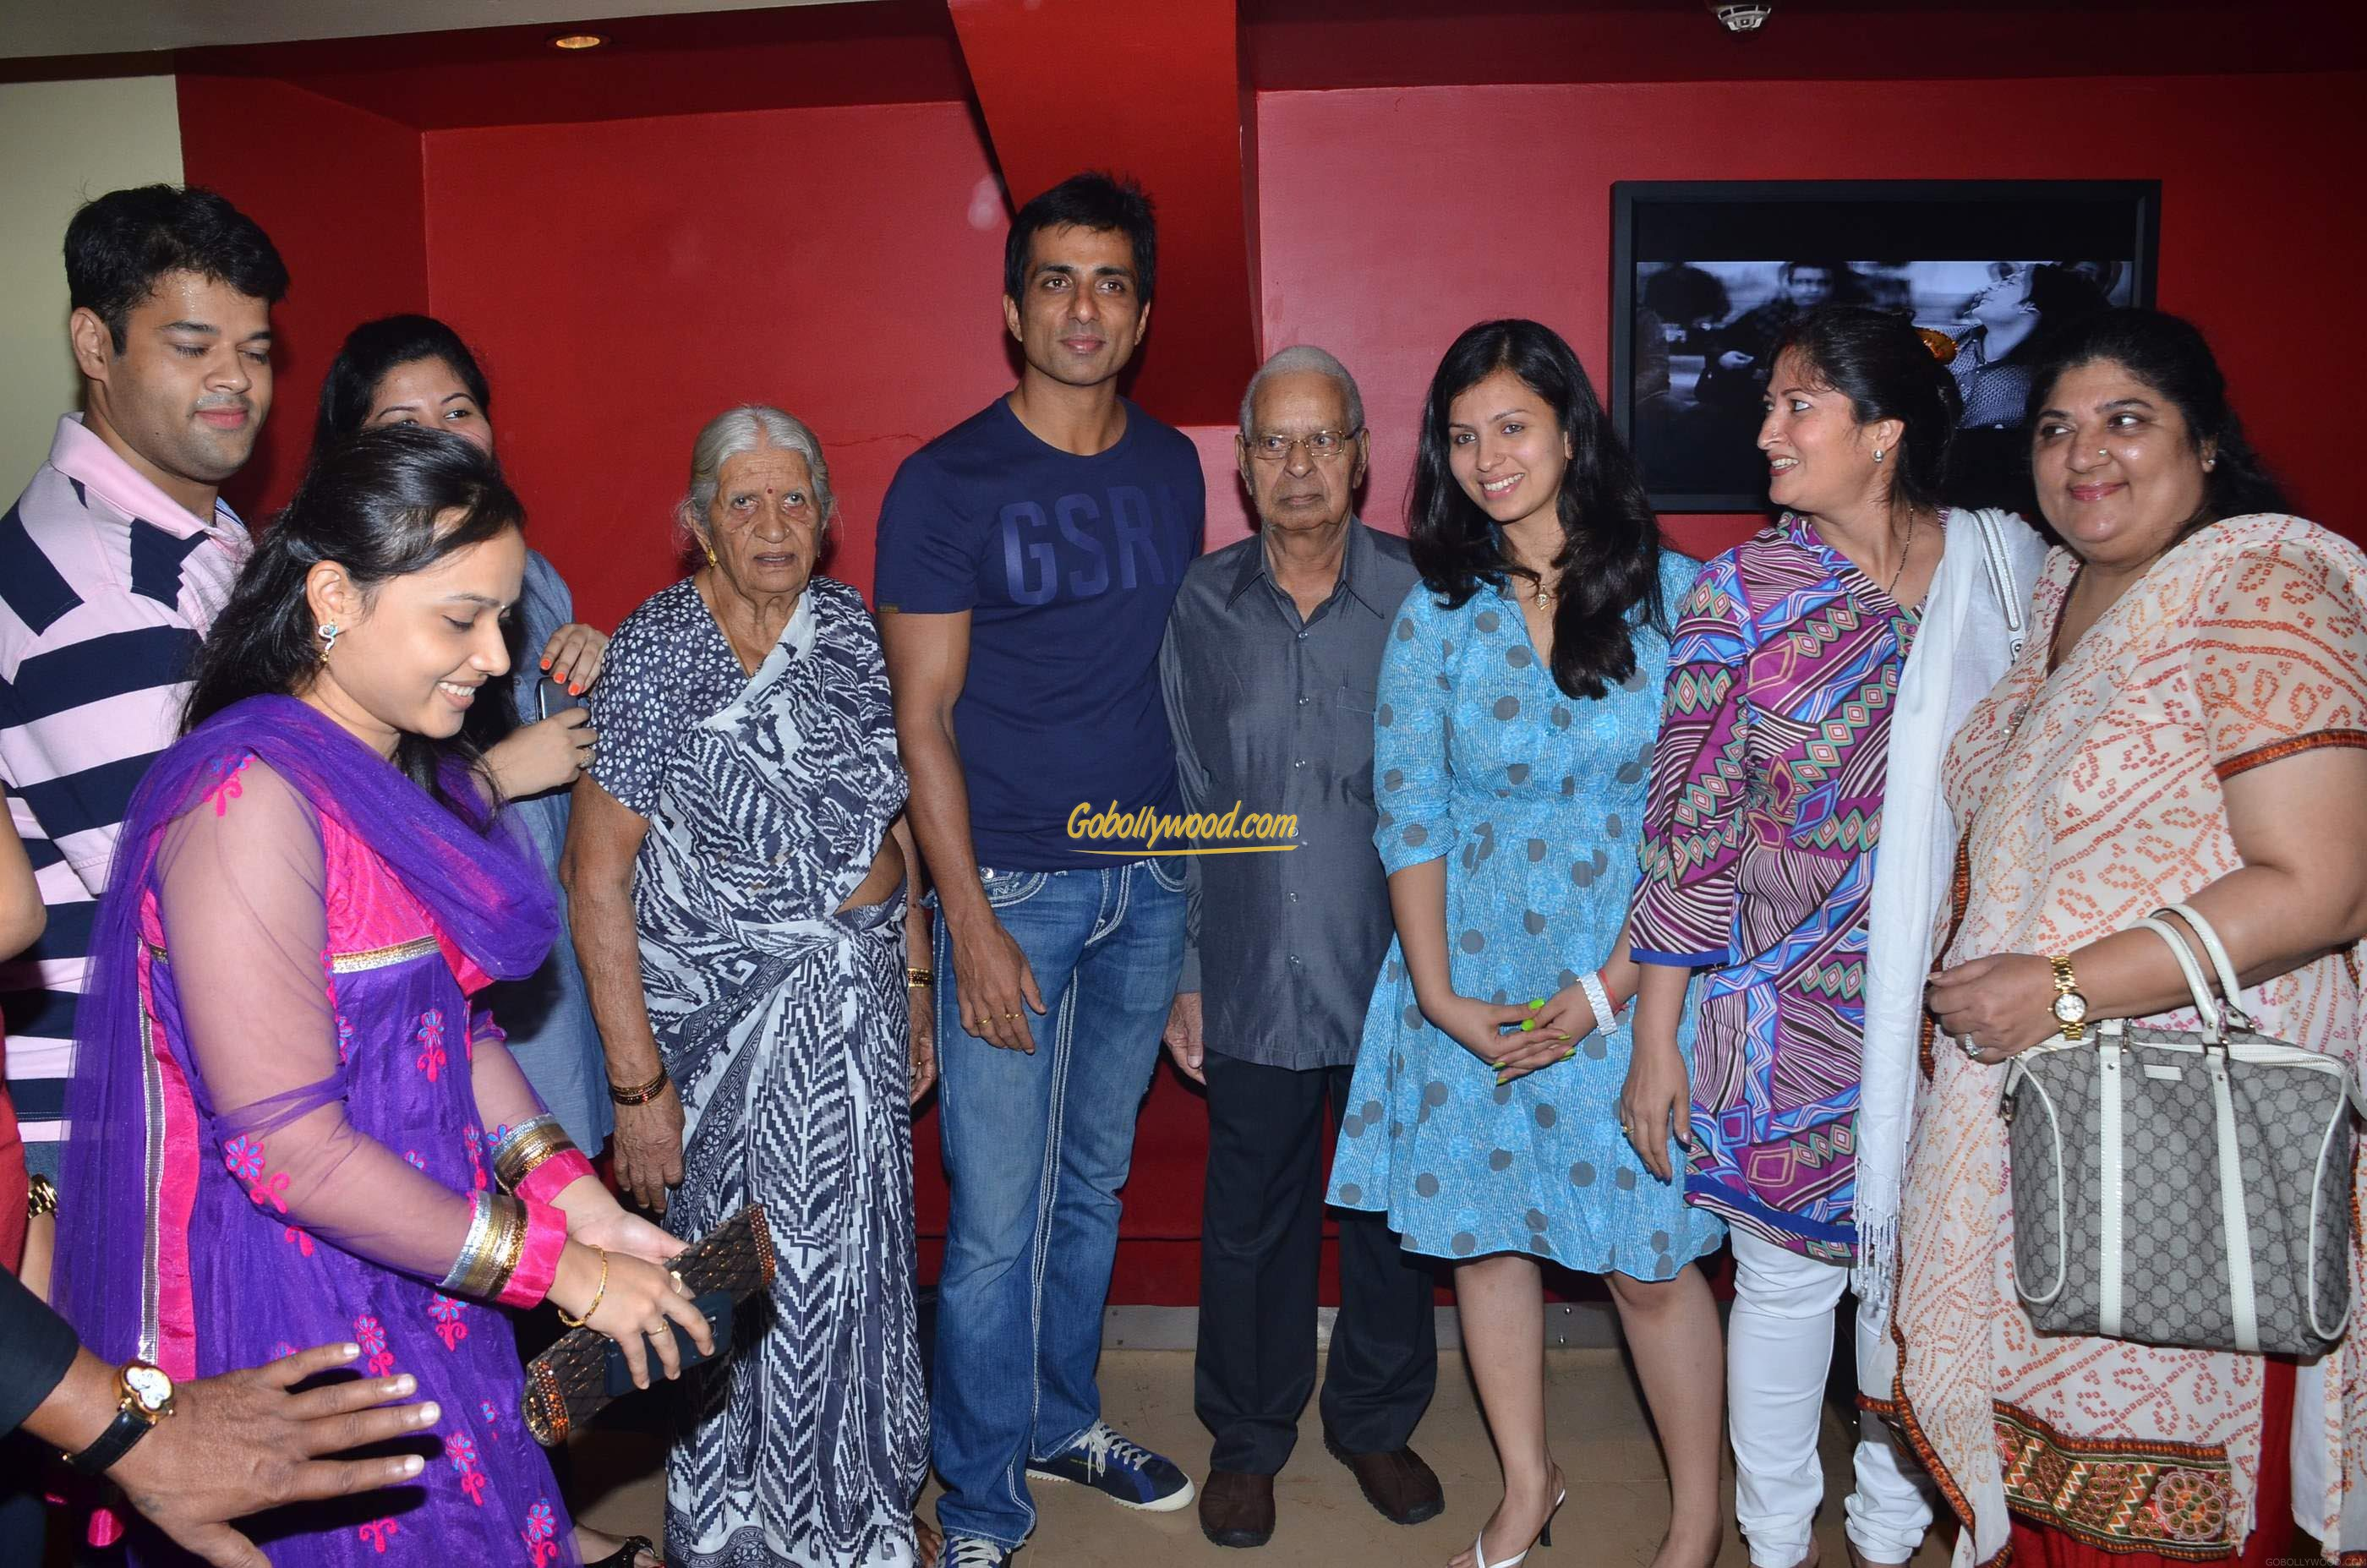 Sonu Sood Family Photos, Wife, Age, Upcoming Movies